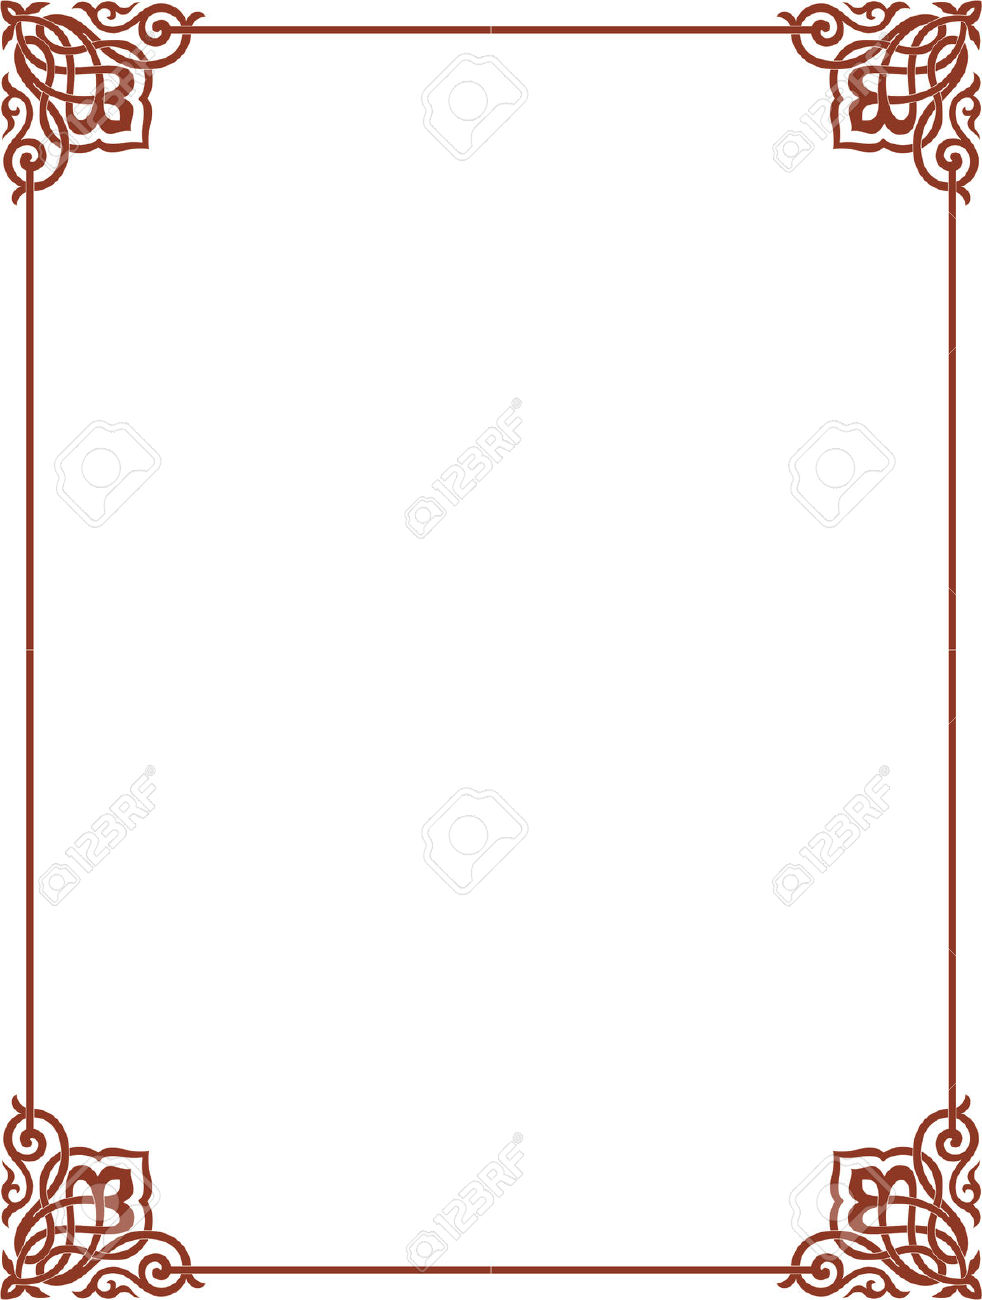 Simple Outline Vector Frame With Corners, Colored Royalty Free.